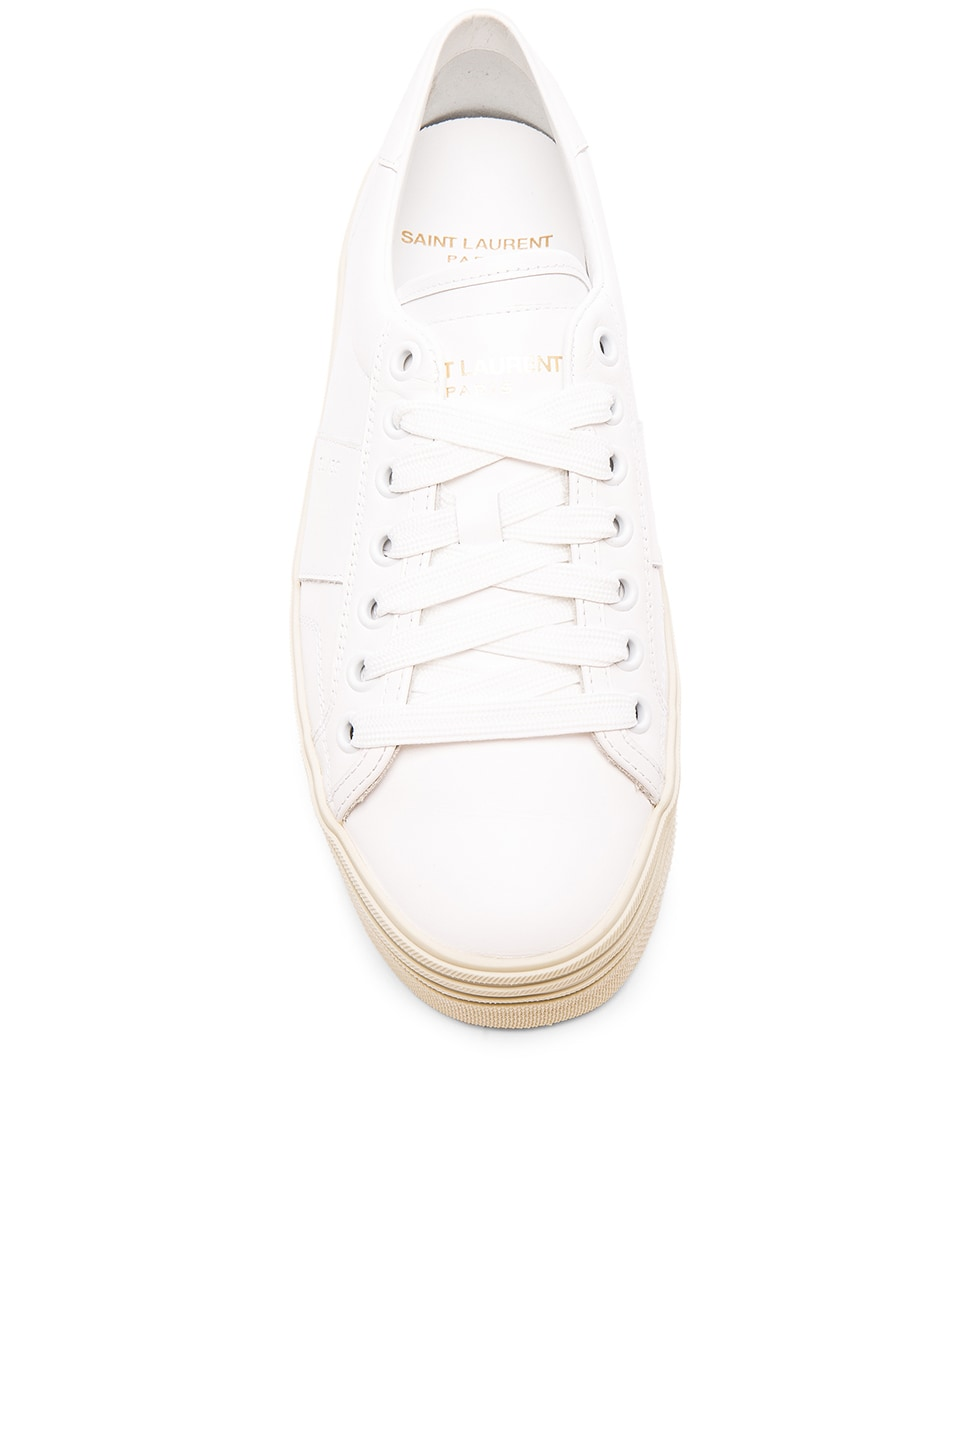 b096004d6922 Image 4 of Saint Laurent Leather Court Classic Platform Sneakers in Off  White